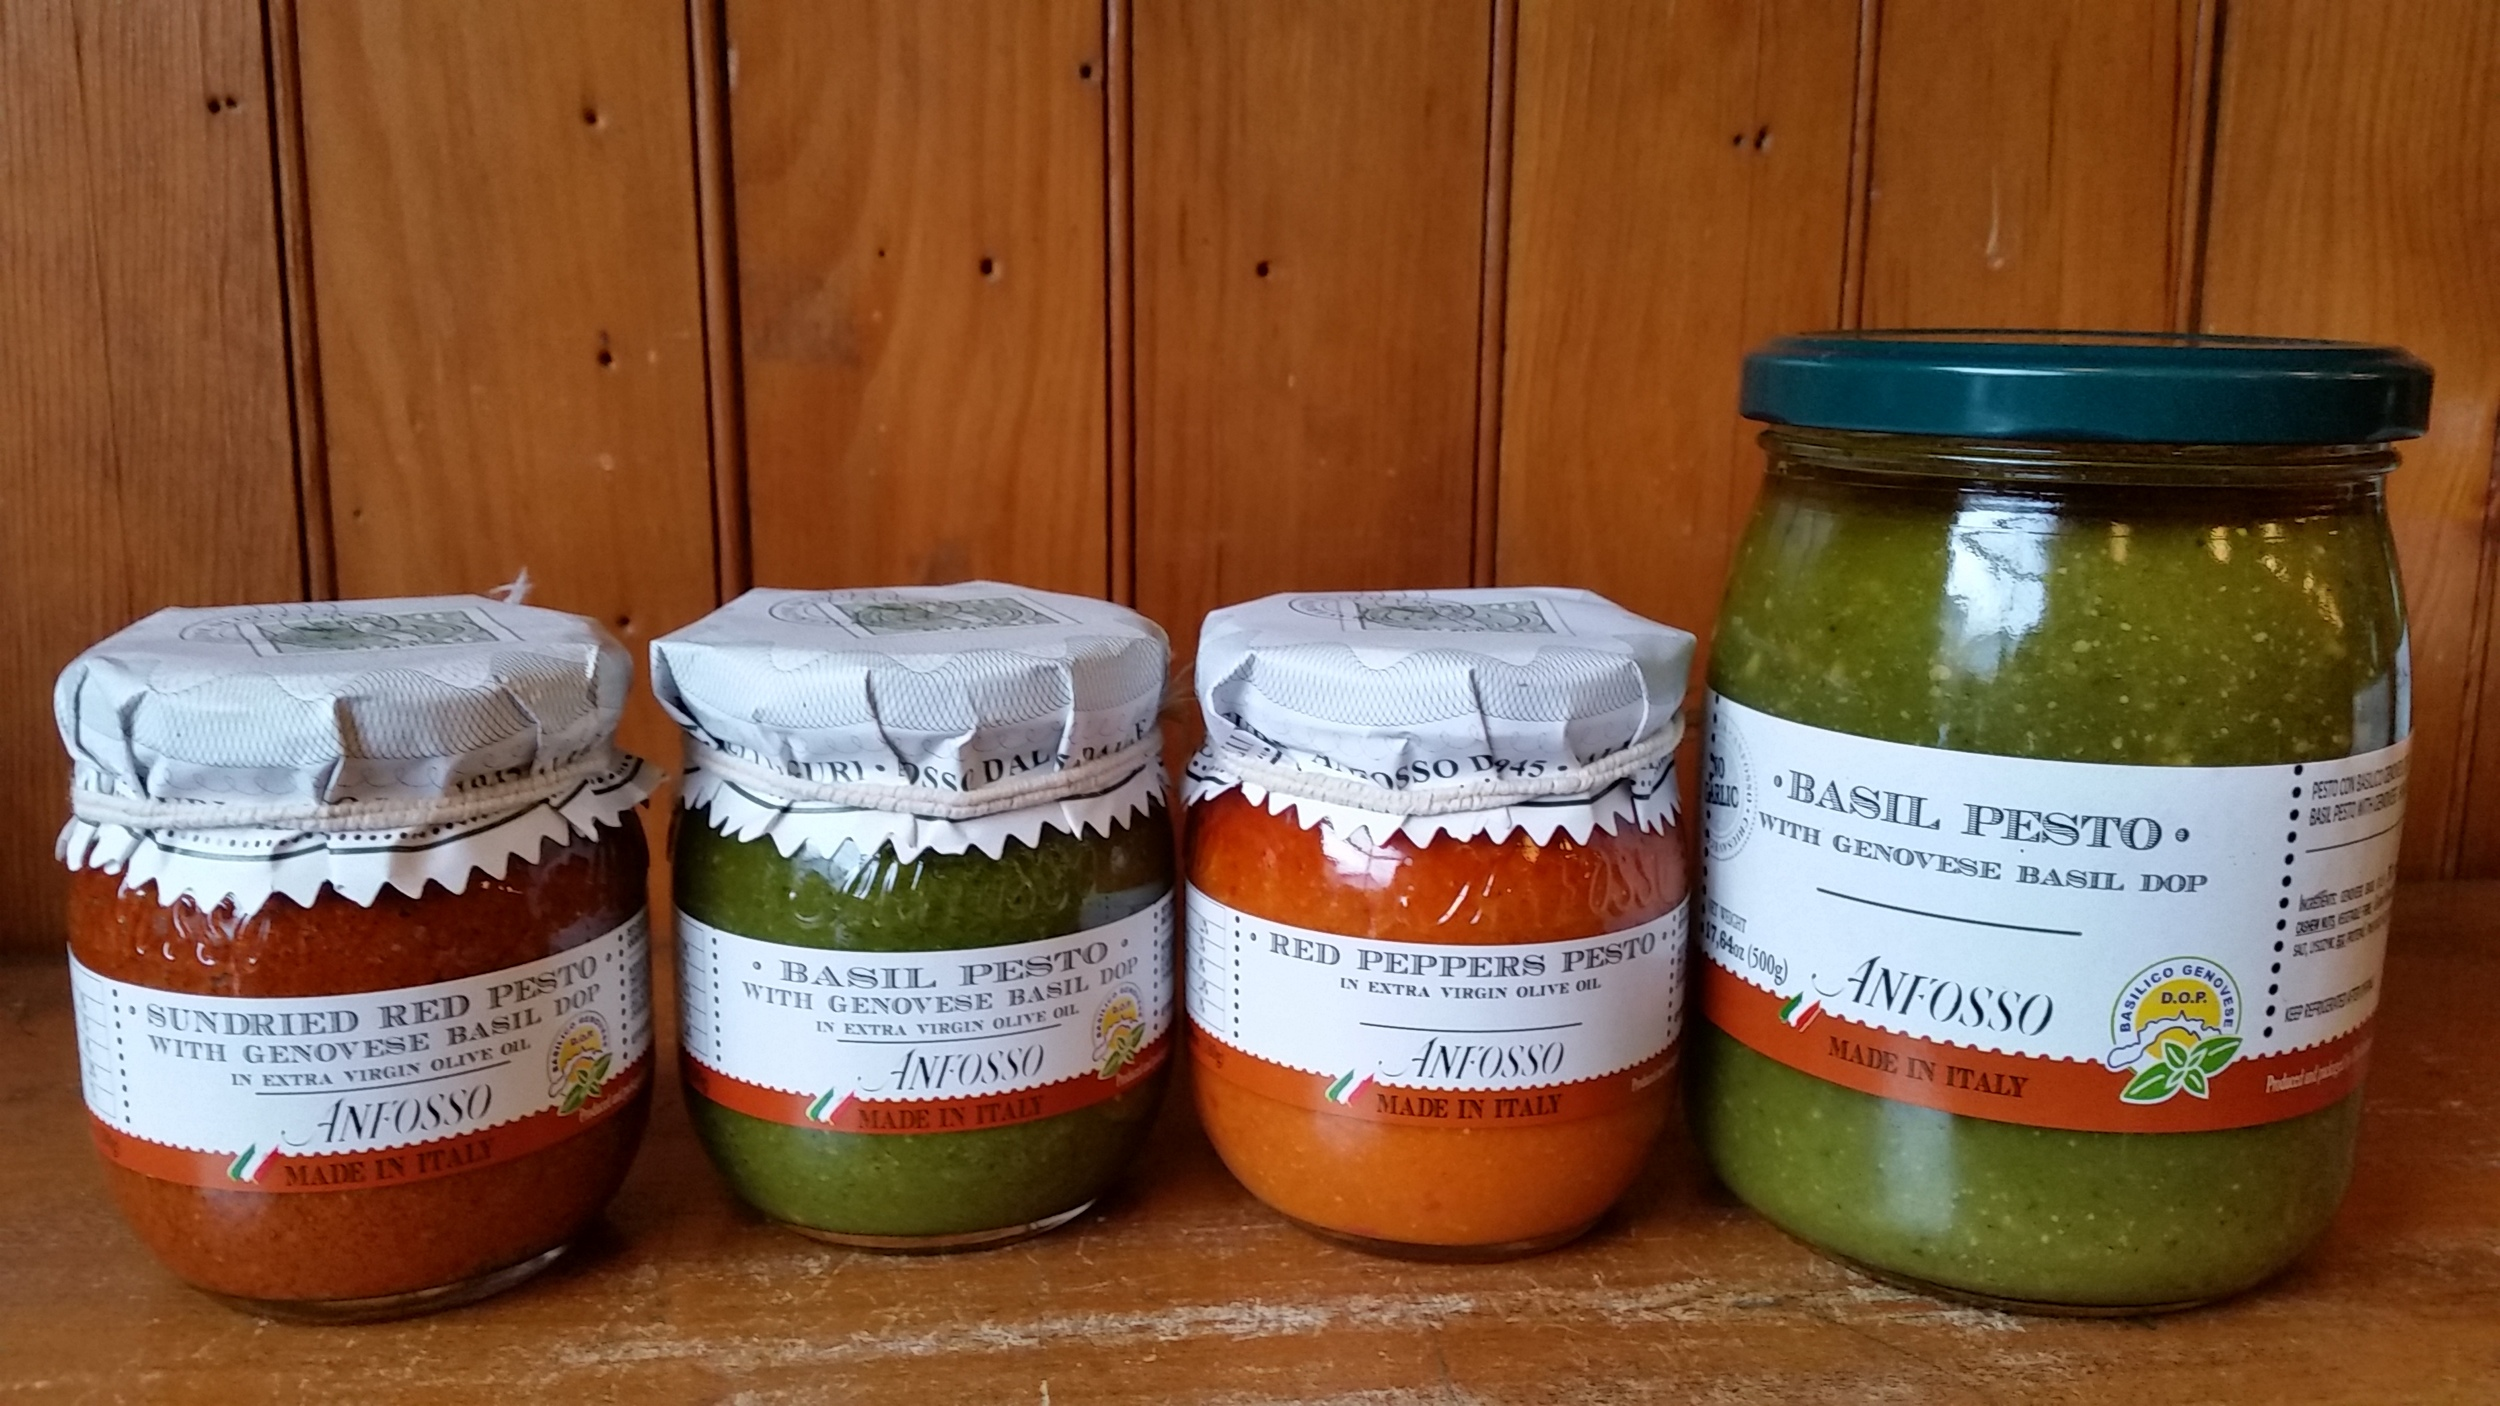 Different pesto sauce from Anfosso